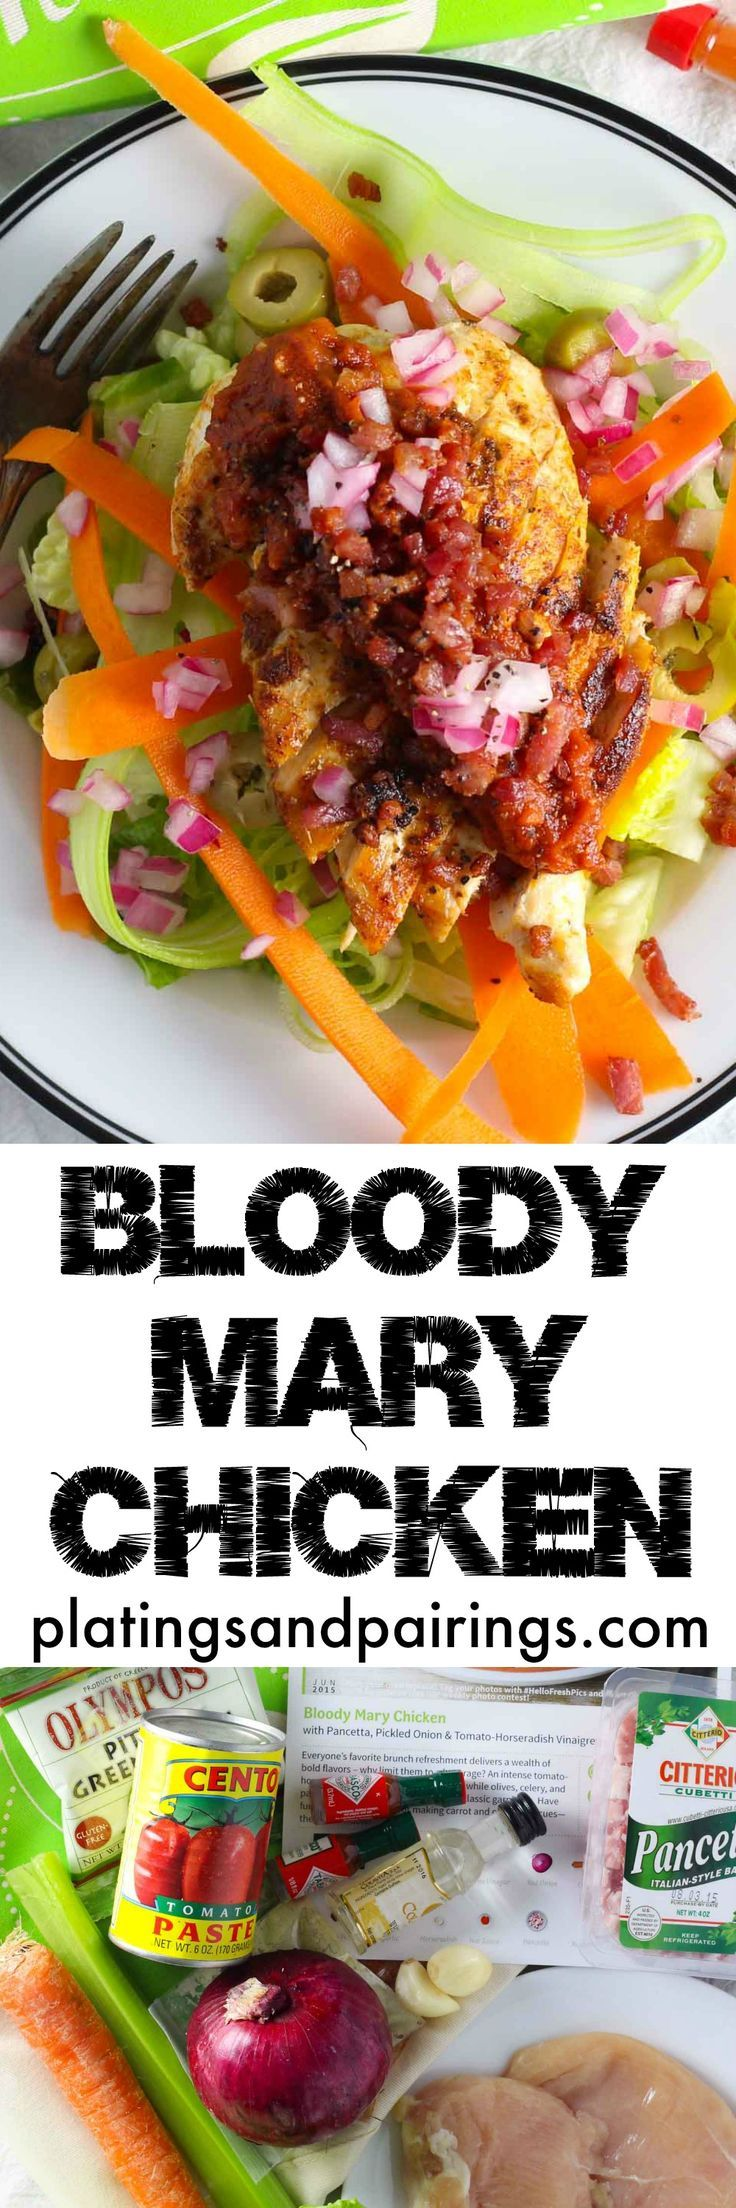 Bloody Mary Chicken + A Hello Fresh Review platingsandpairings.com